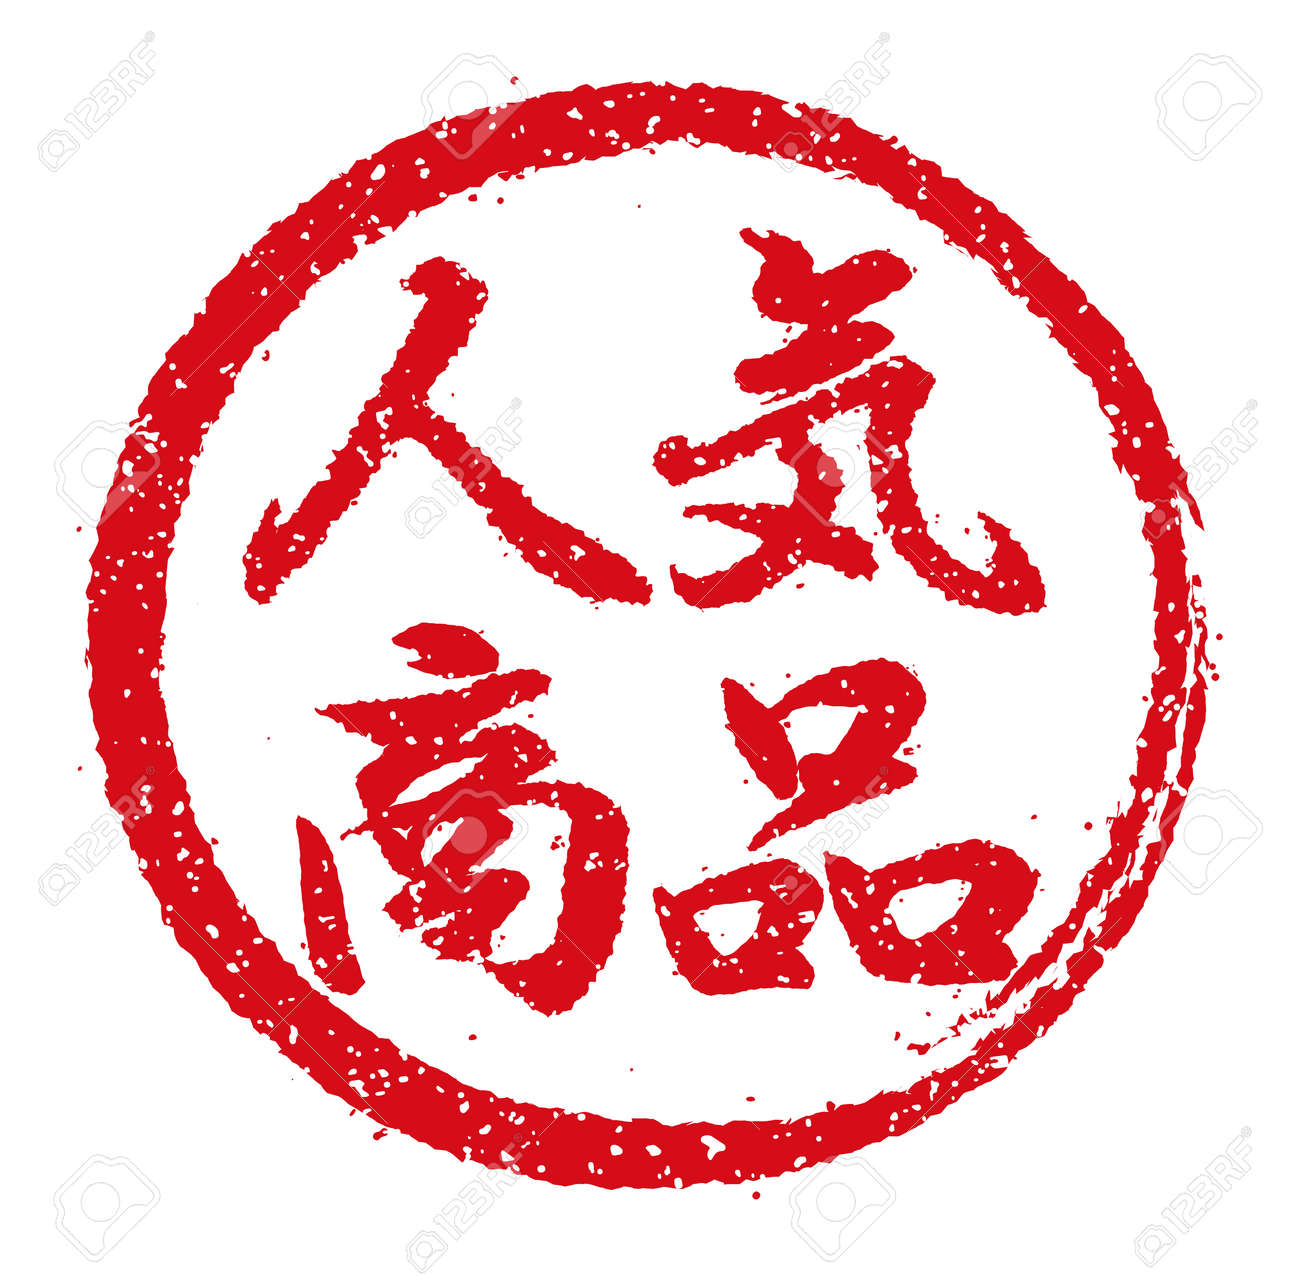 Rubber stamp illustration often used in Japanese restaurants and pubs   Very popular - 168732421